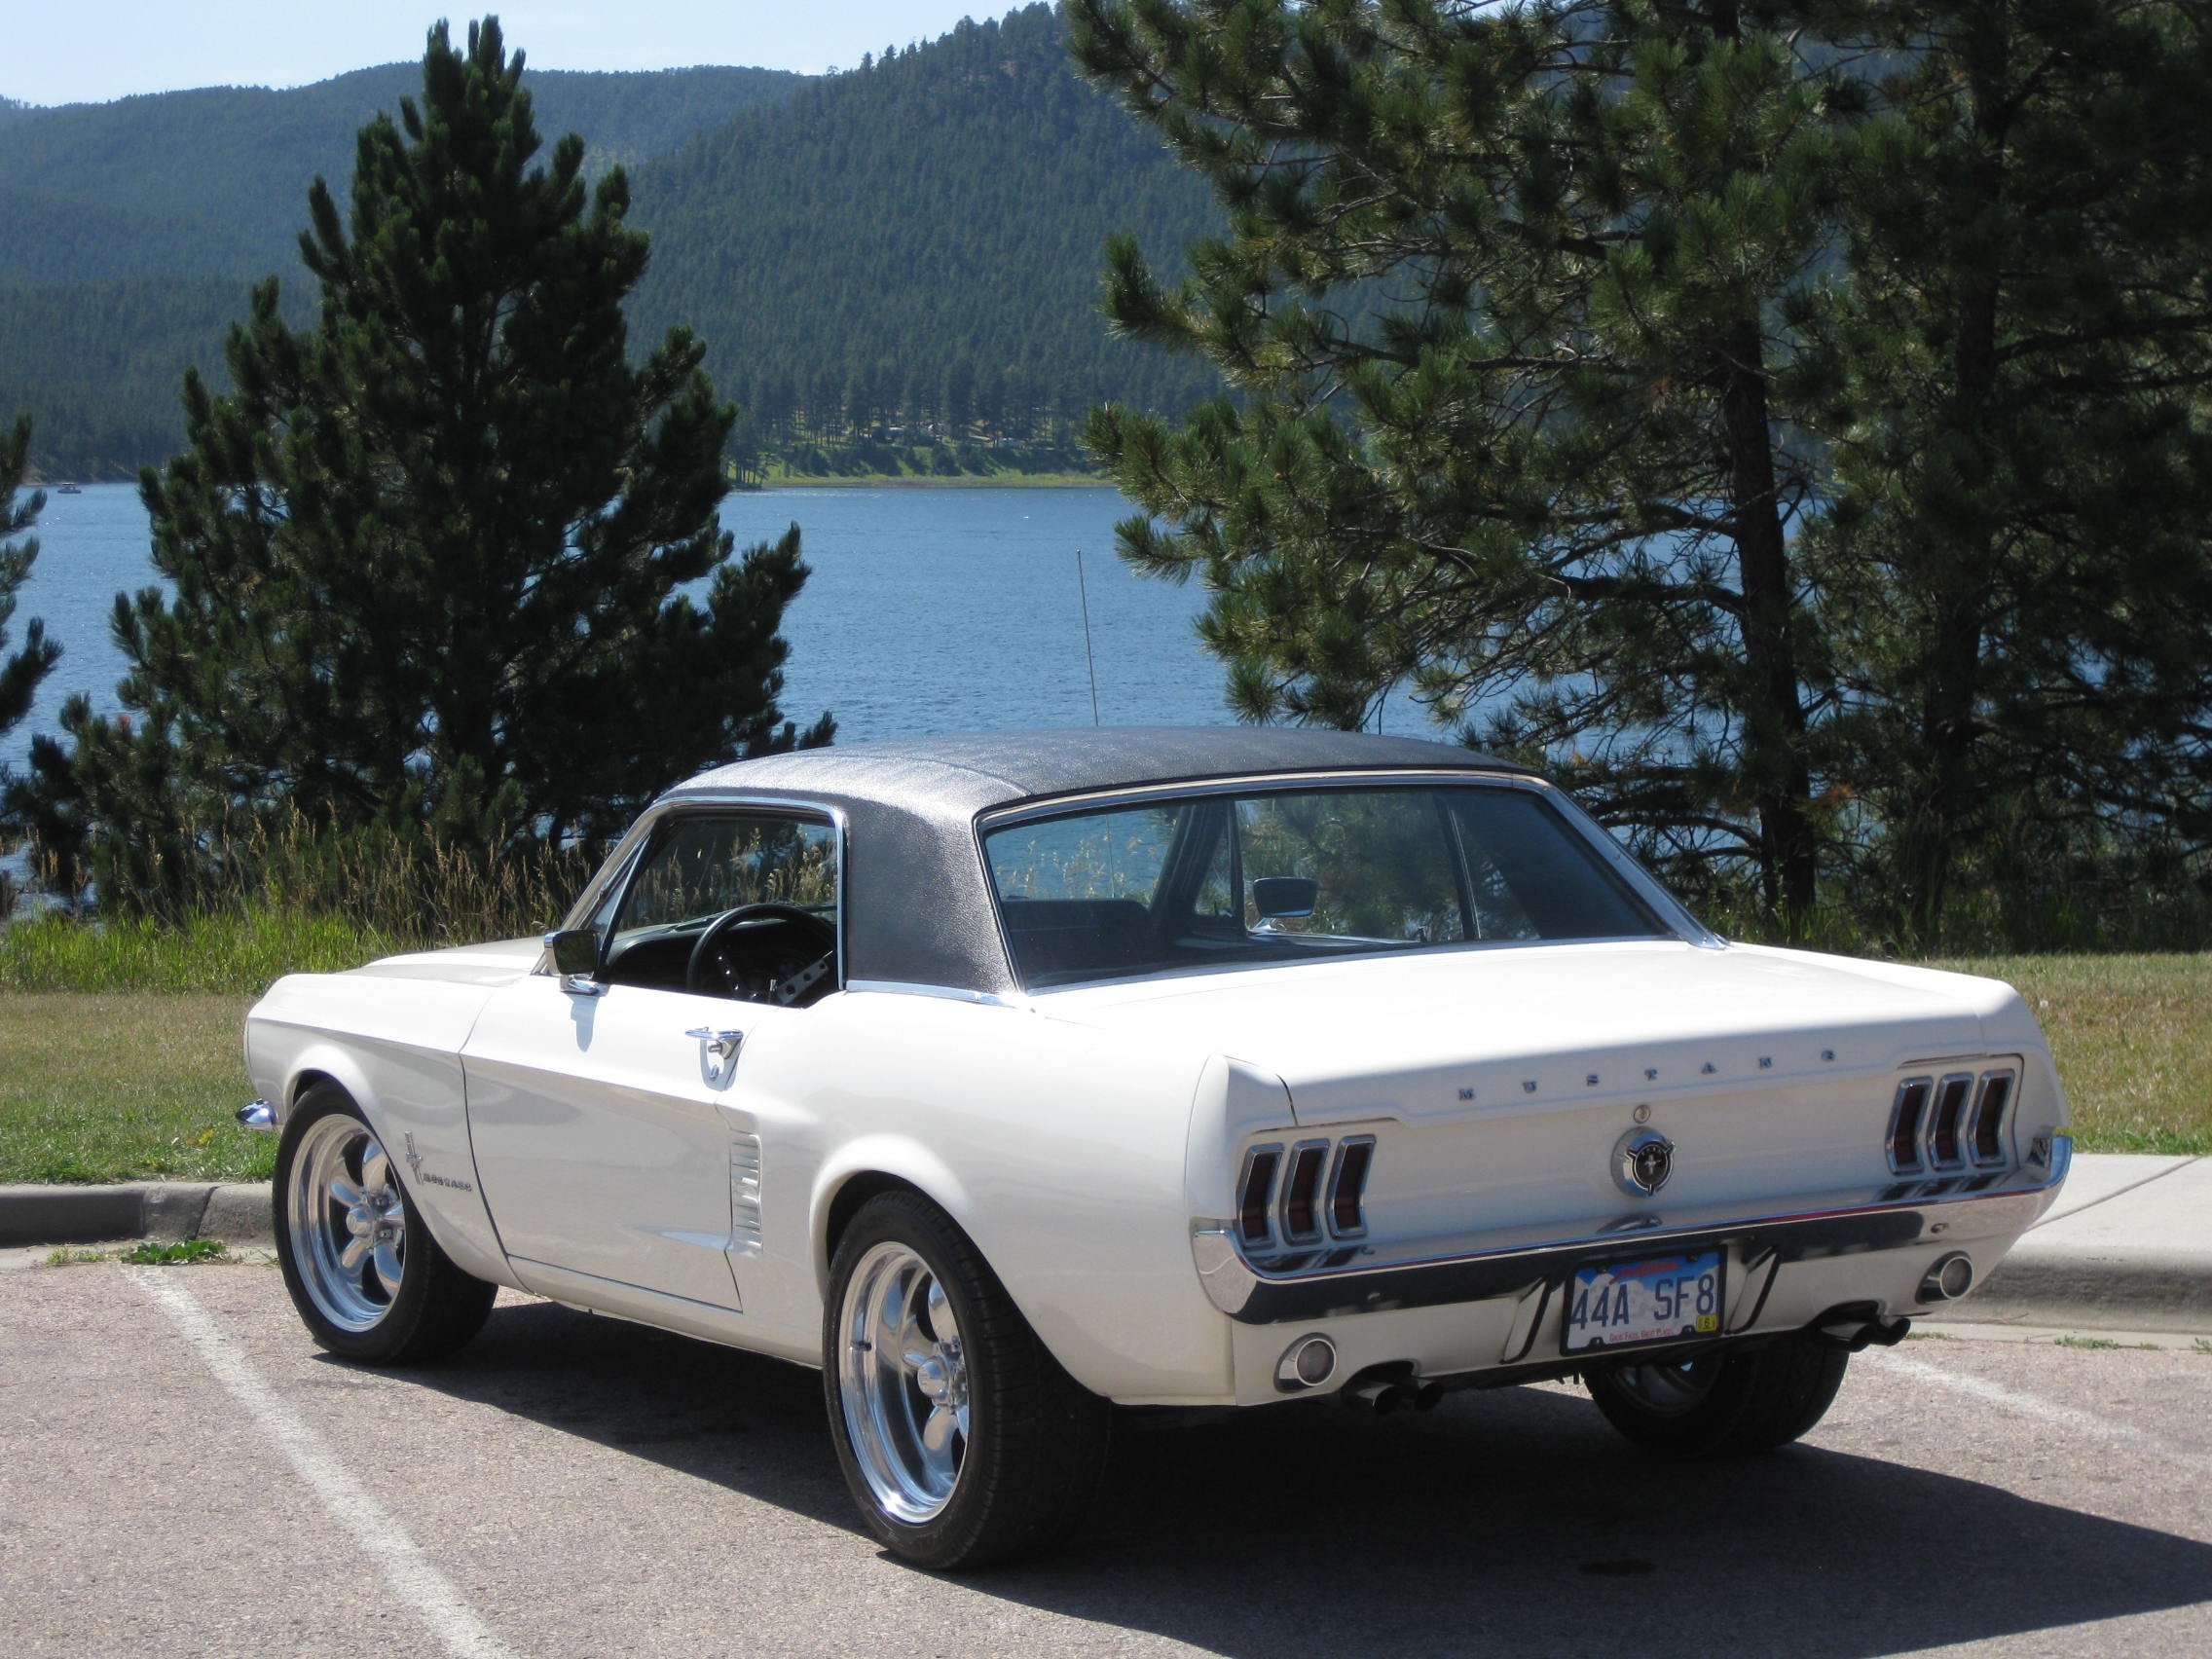 1967 - 1968 Mustang Tire and Wheels Picture Thread-mustang-rally-029.jpg